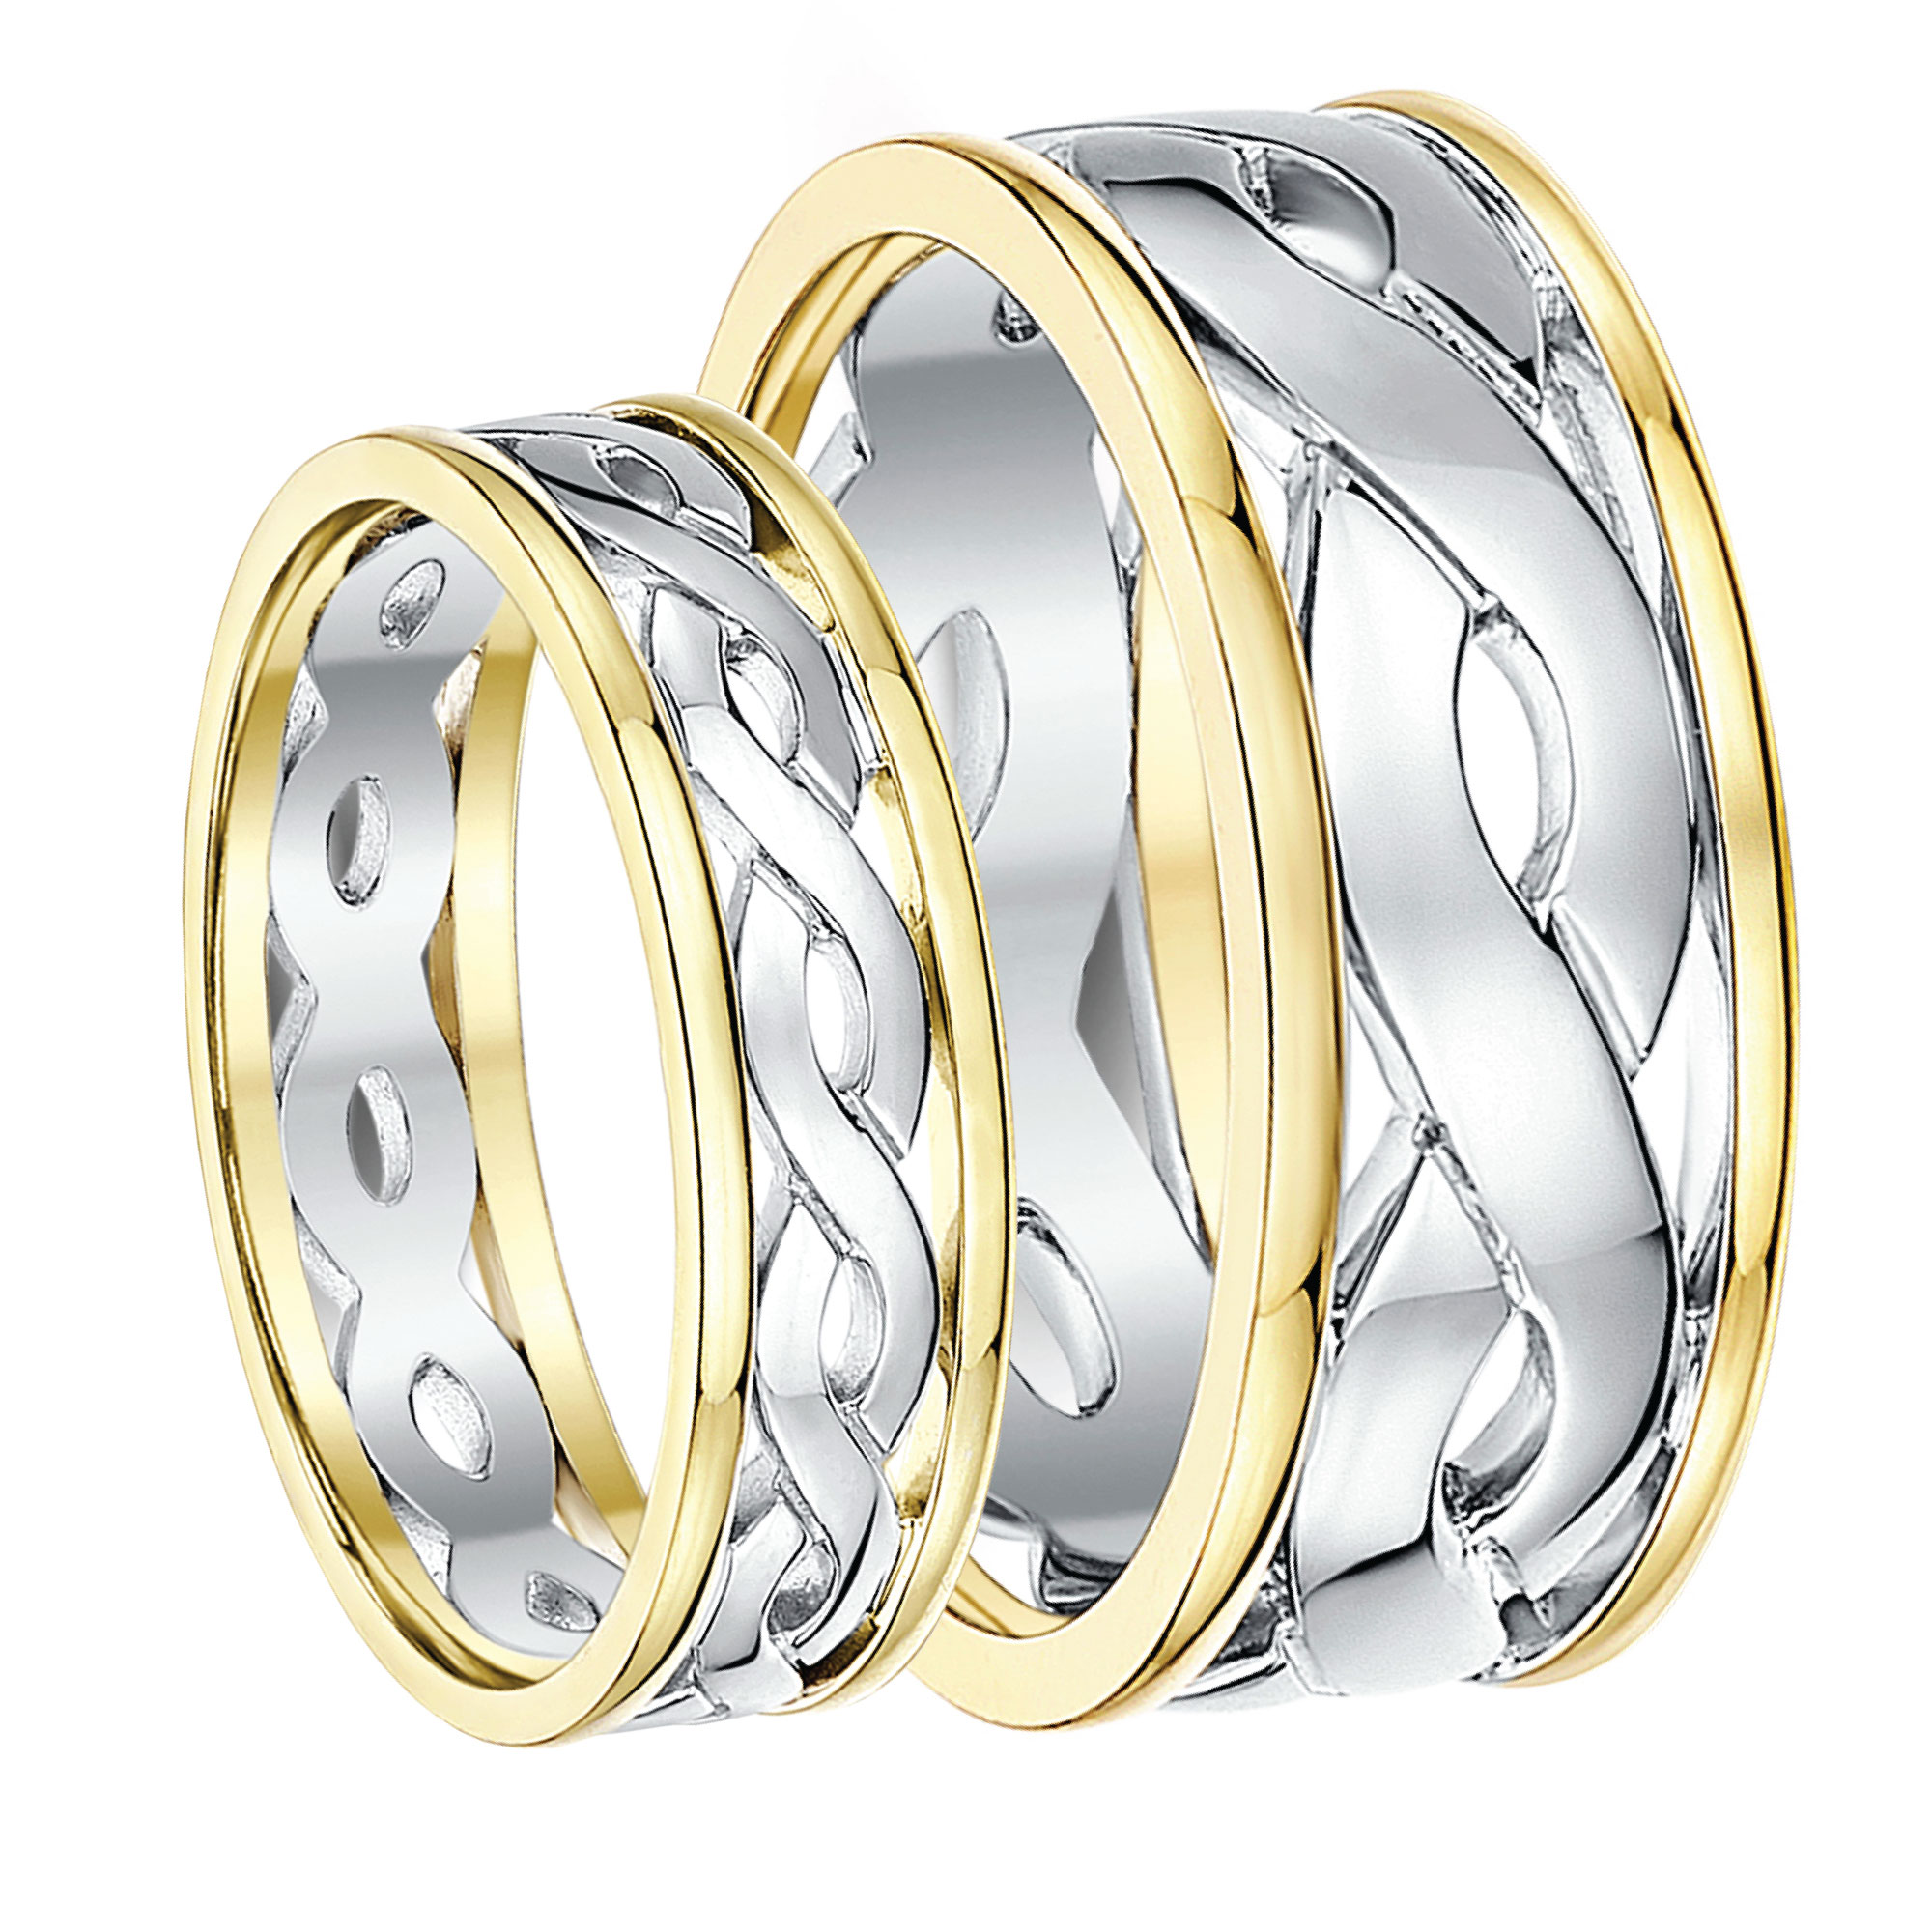 com bands best brilliant men interesting of rings mens for western scottish in matvuk gaelic wedding